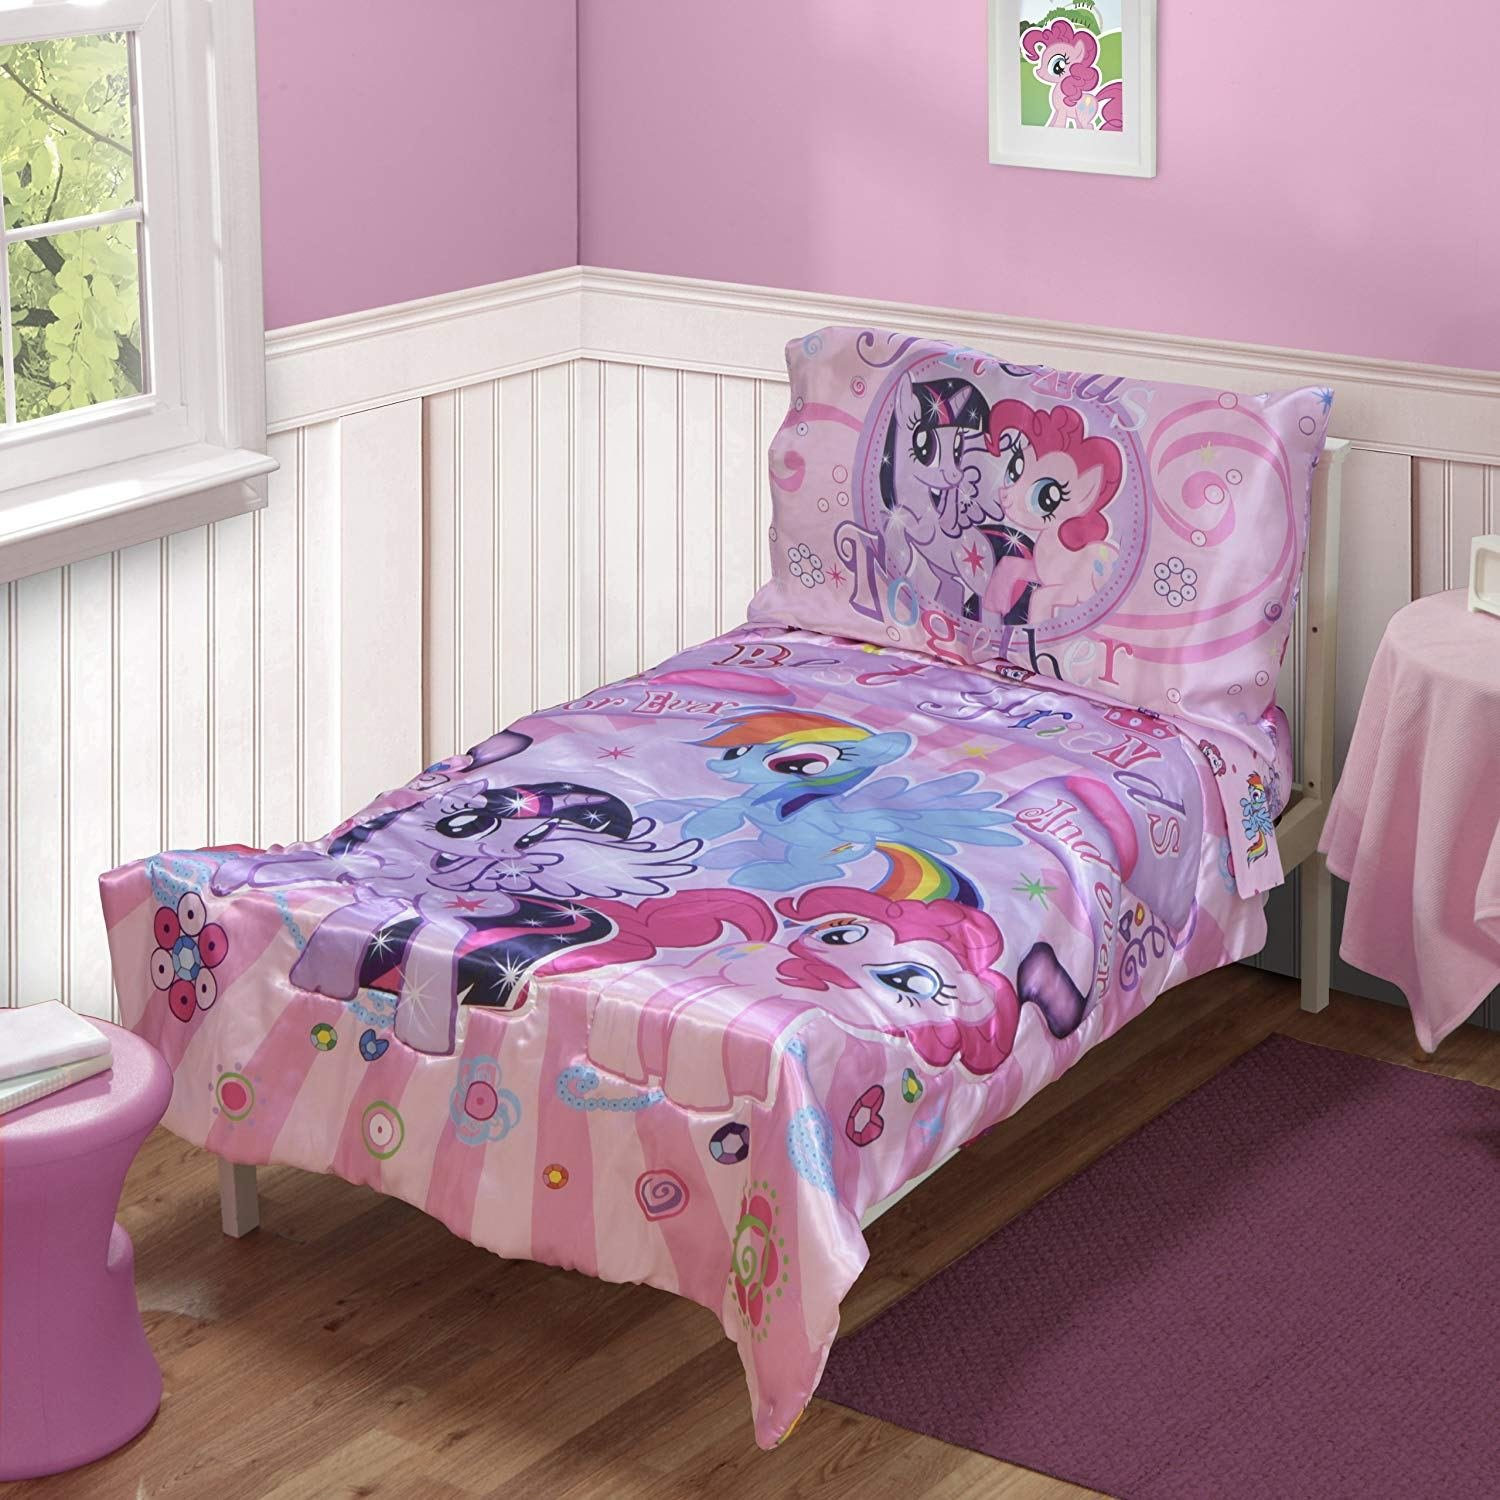 Best New My Little Pony Bedding Set Toddler 4Pc Pink Fitted With Pictures